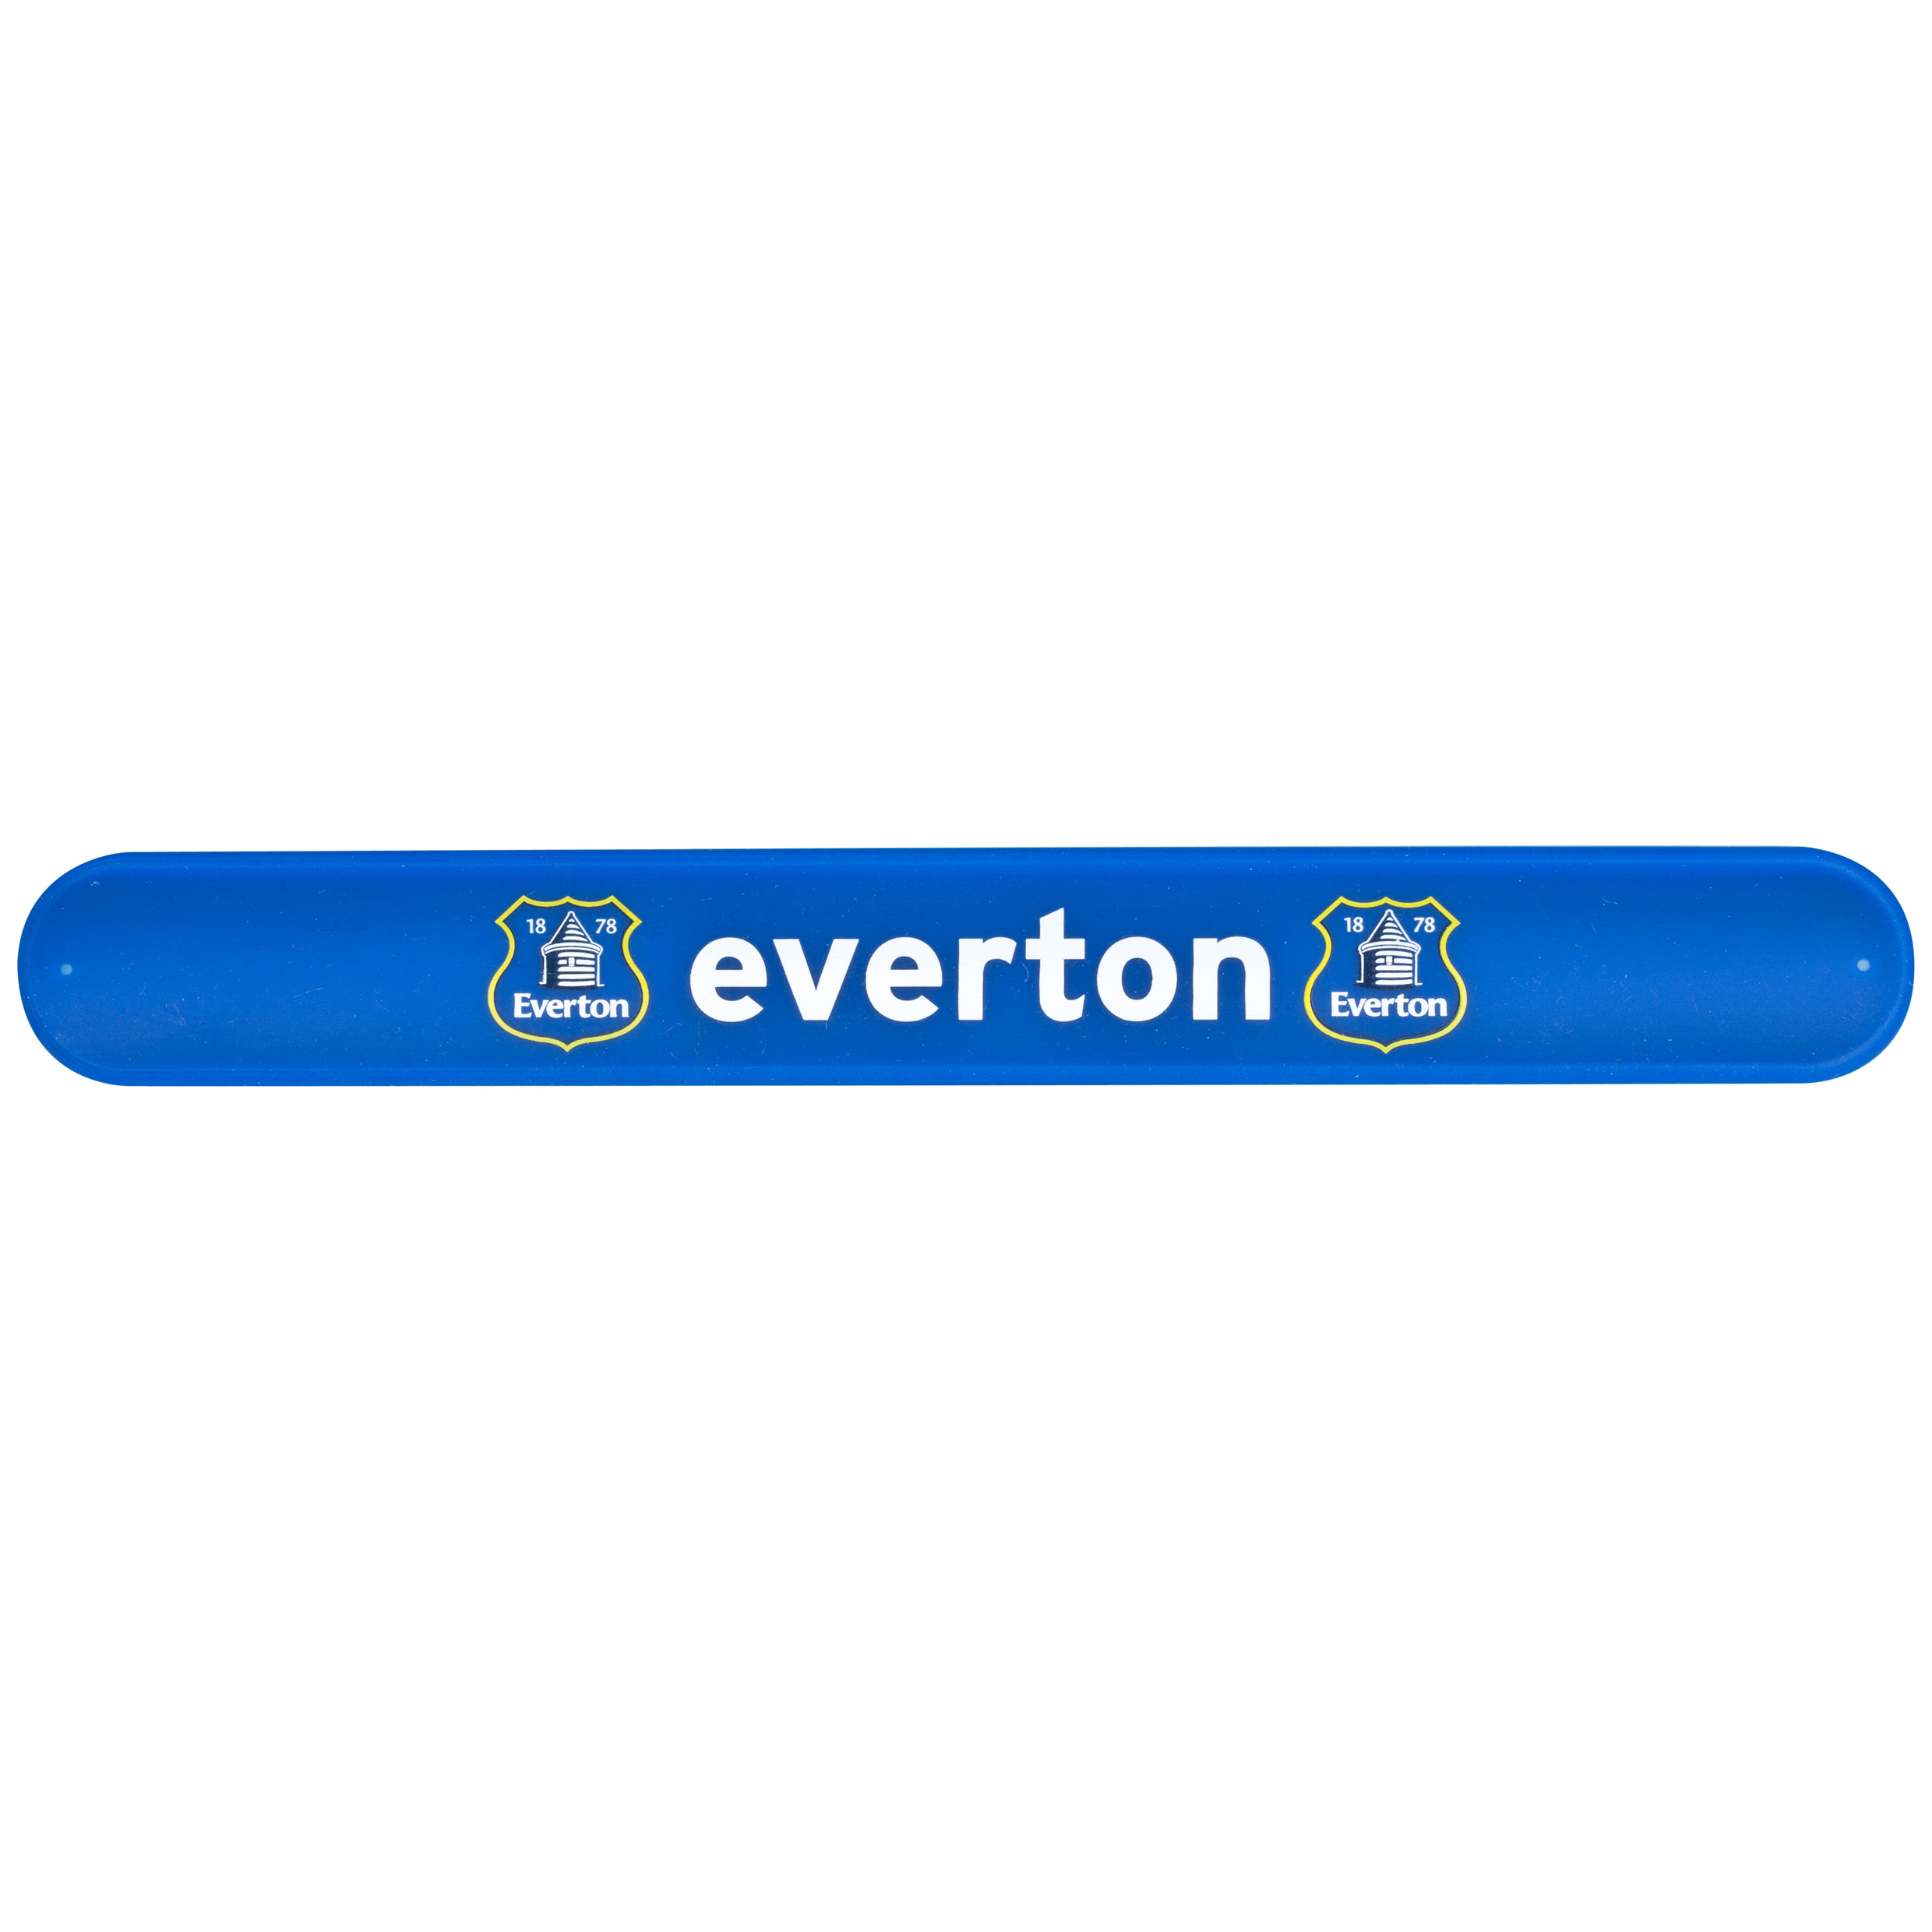 Everton Slap Band